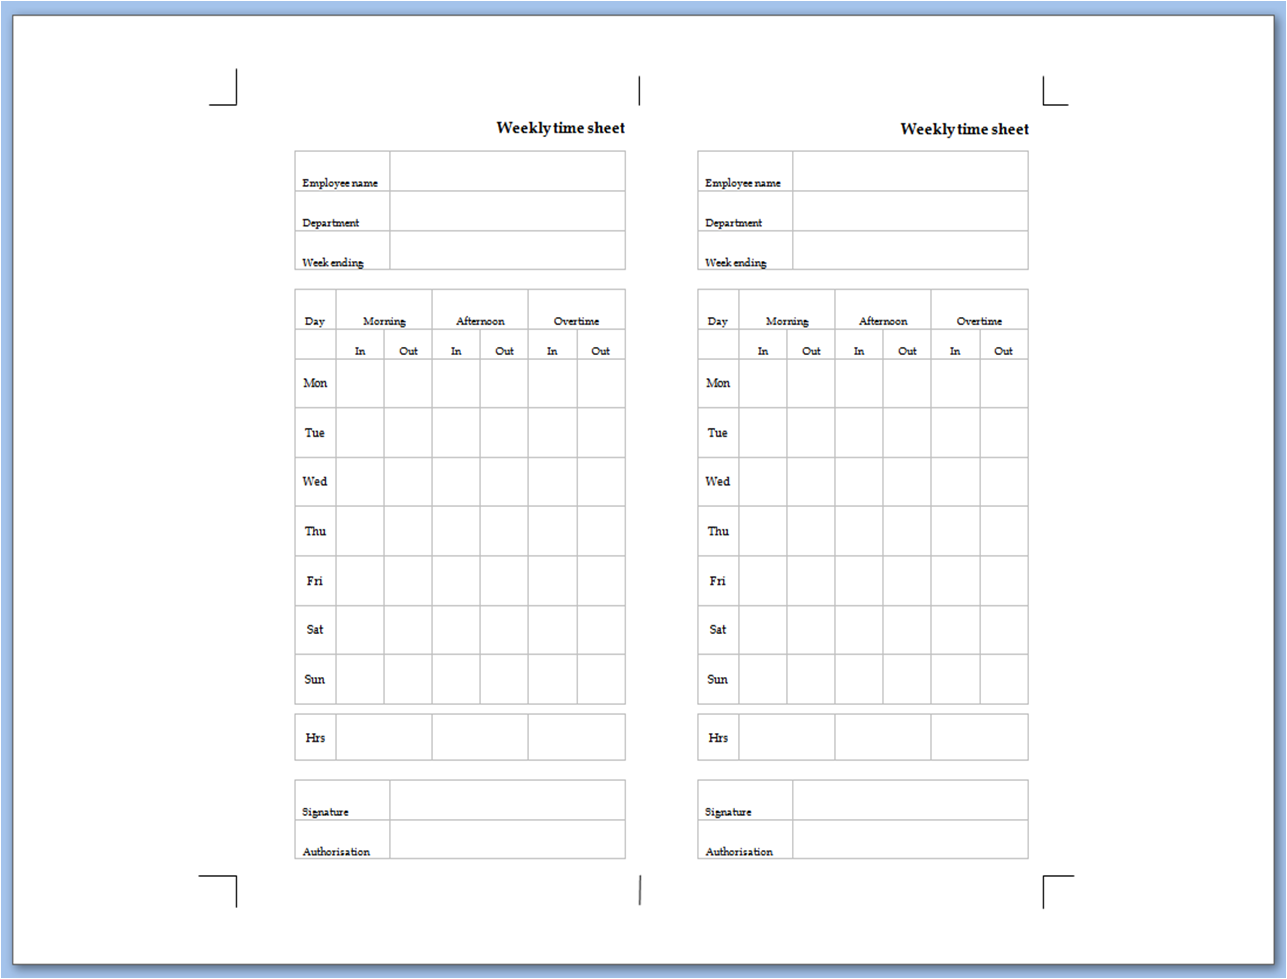 Worksheets Timesheet Worksheet weekly time daway dabrowa co time